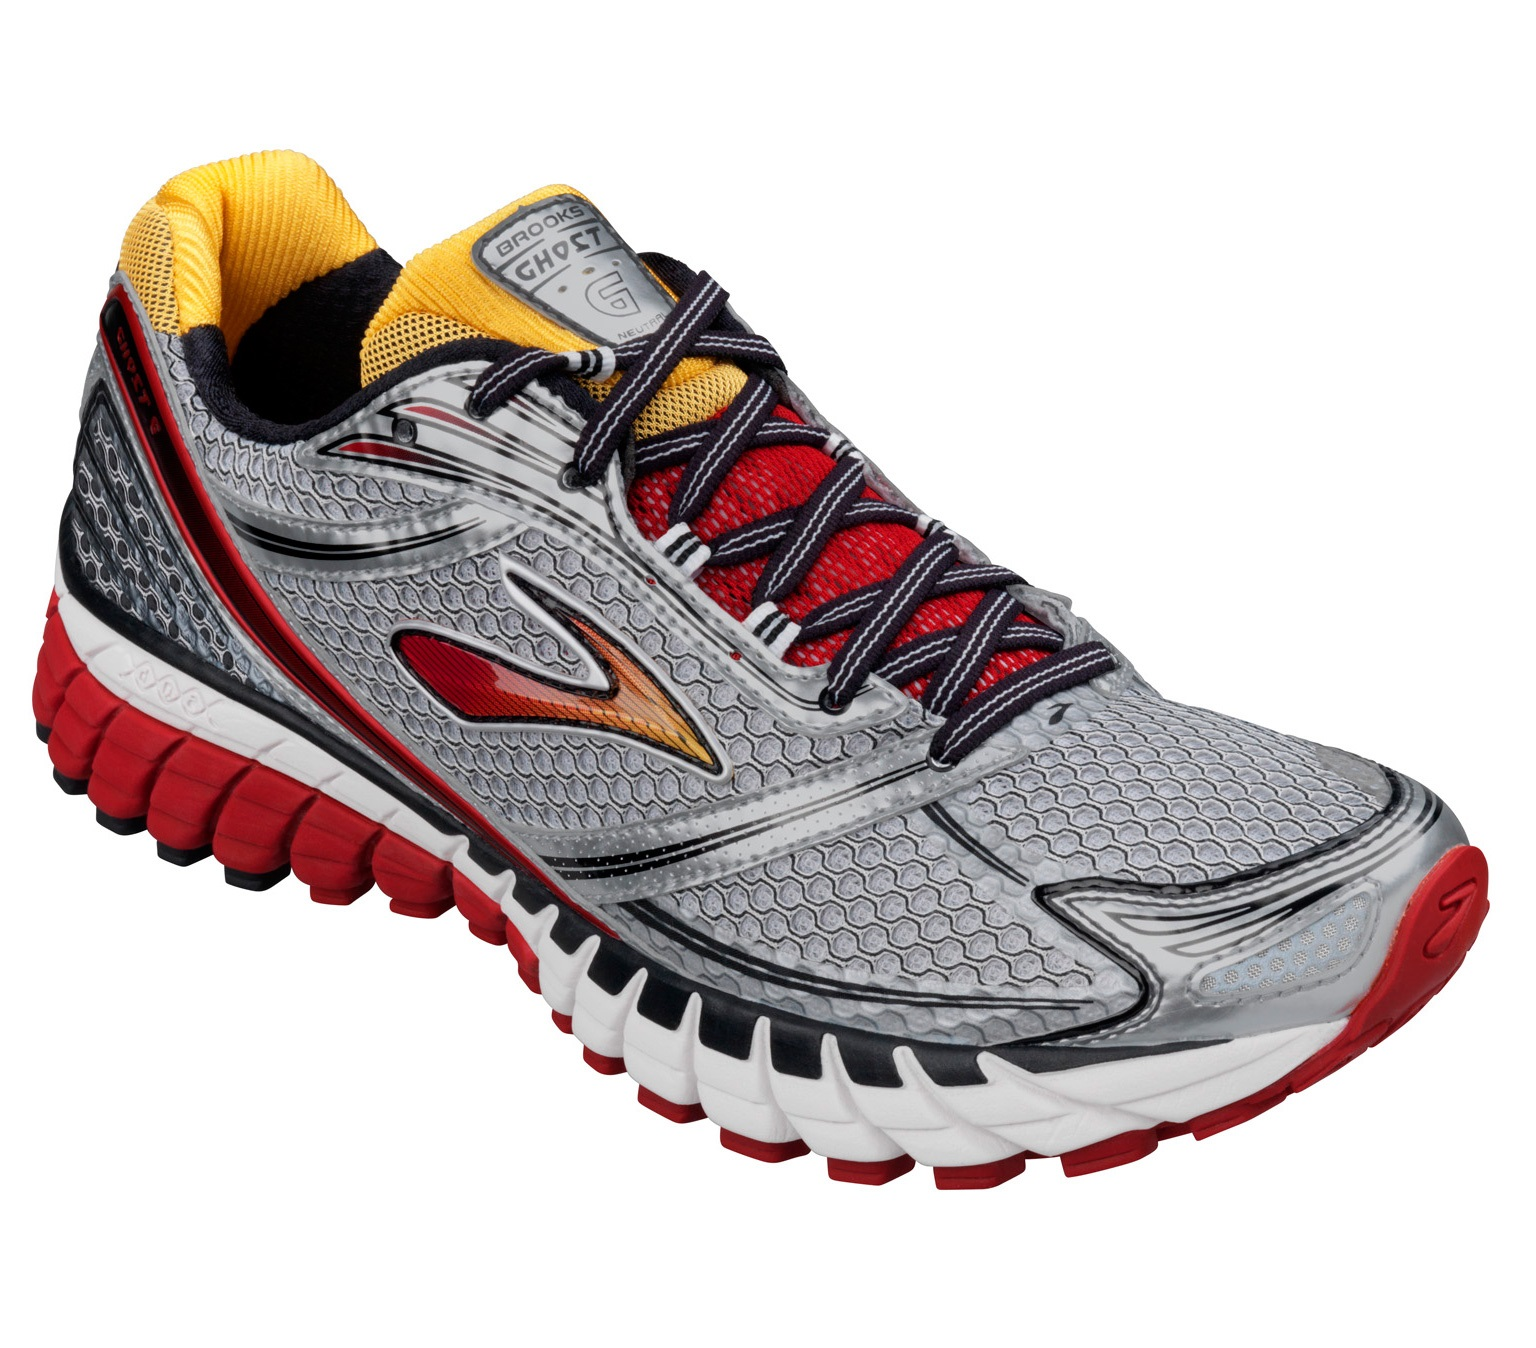 72d6d0d7248 The Running Shoe Review    Brooks Ghost 6